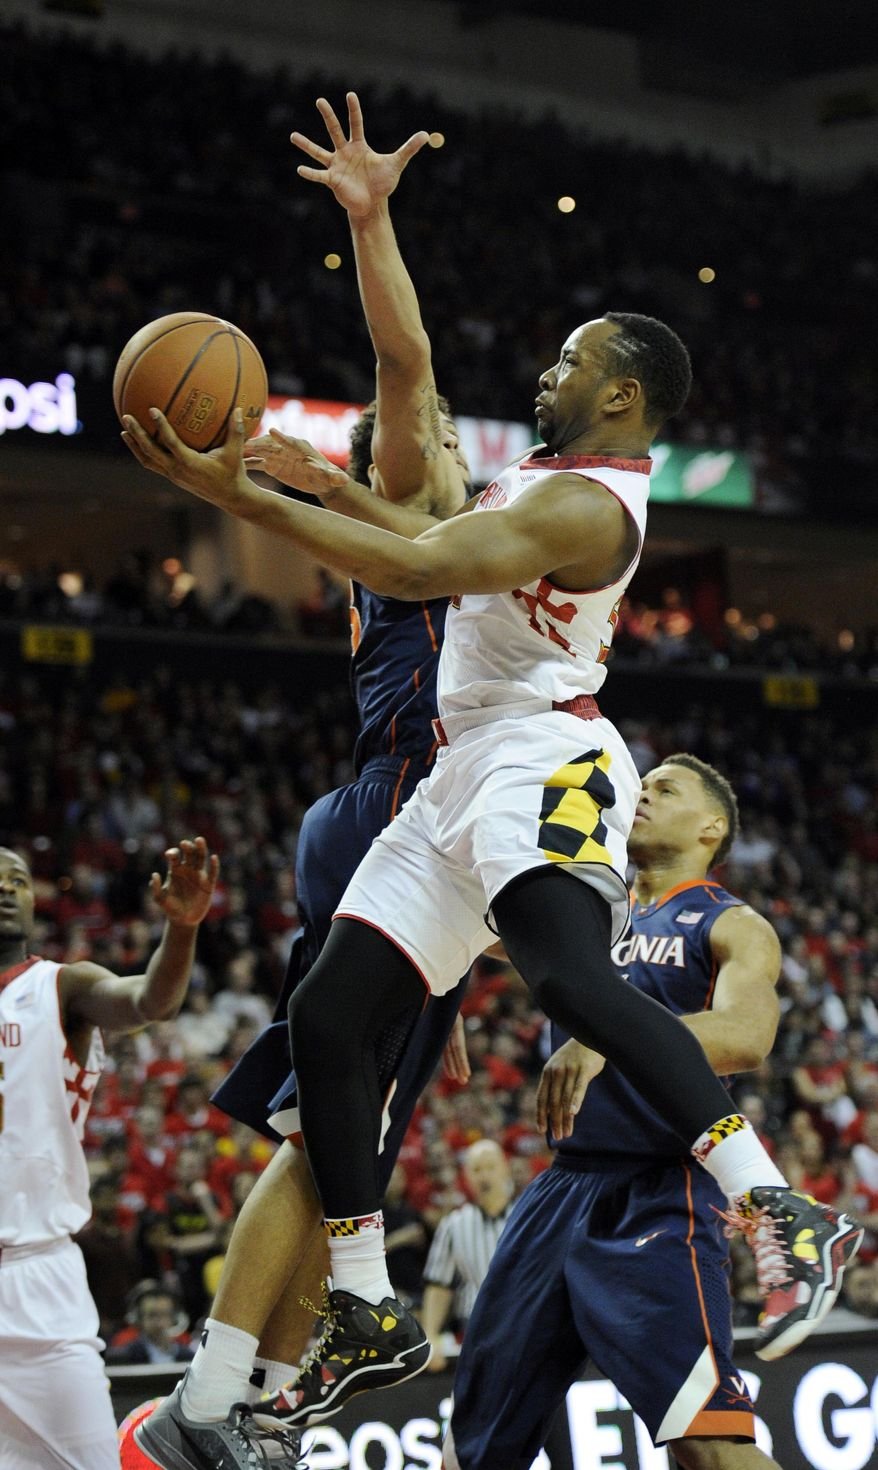 Maryland's Dez Wells, center, goes to the basket against Virginia forward Anthony Gill, left, and Justin Anderson, right, during the second half of an NCAA college basketball game, Sunday, March 9, 2014, in College Park, Md. Maryland won 75-69 in overtime. (AP Photo/Nick Wass)